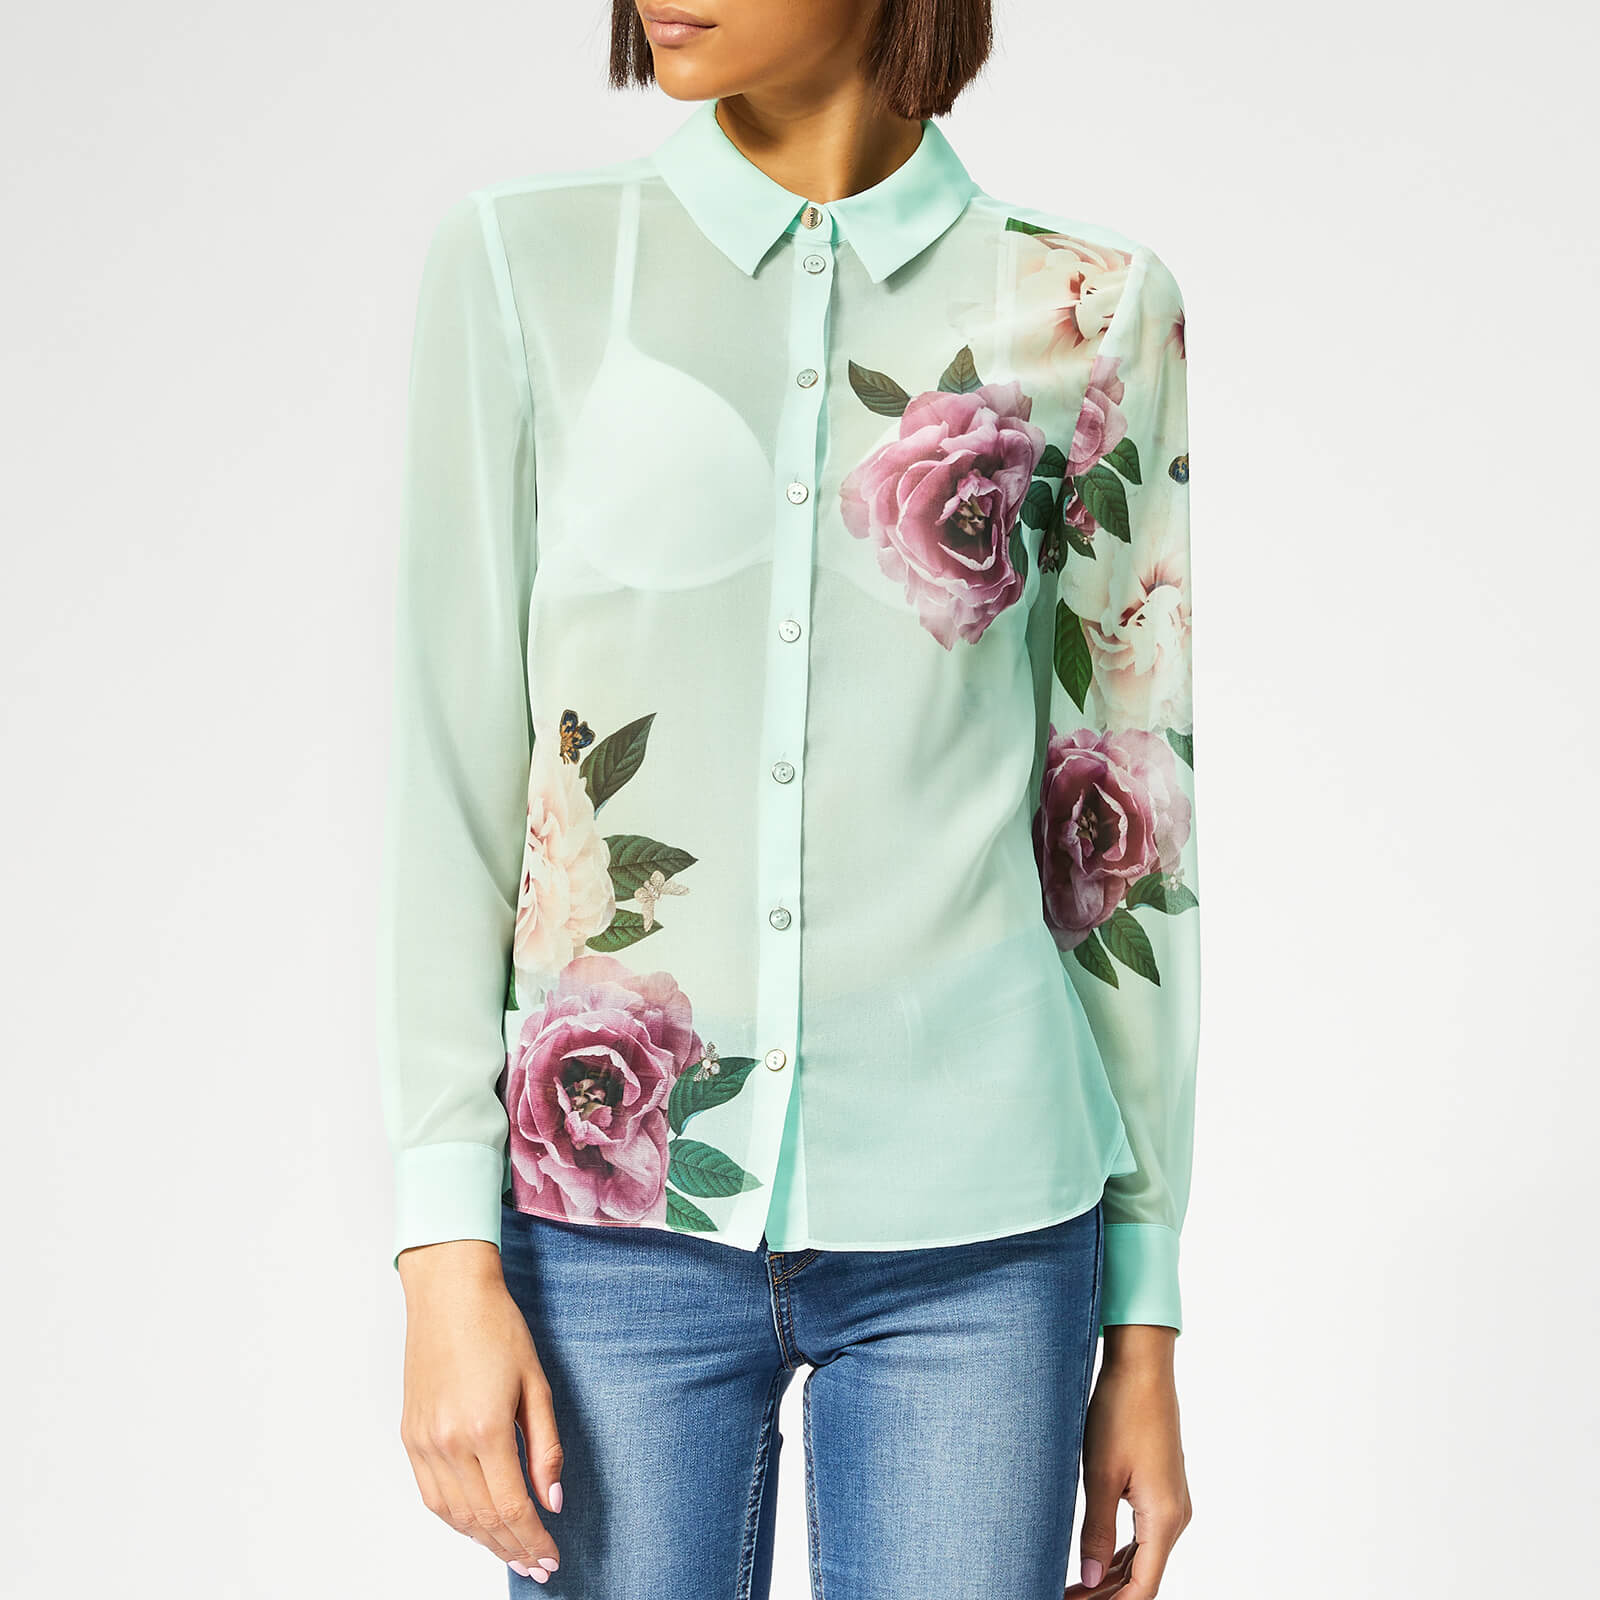 db9ddeabfa41d Ted Baker Women s Zaylaa Magnificent Blouse - Mint Womens Clothing ...